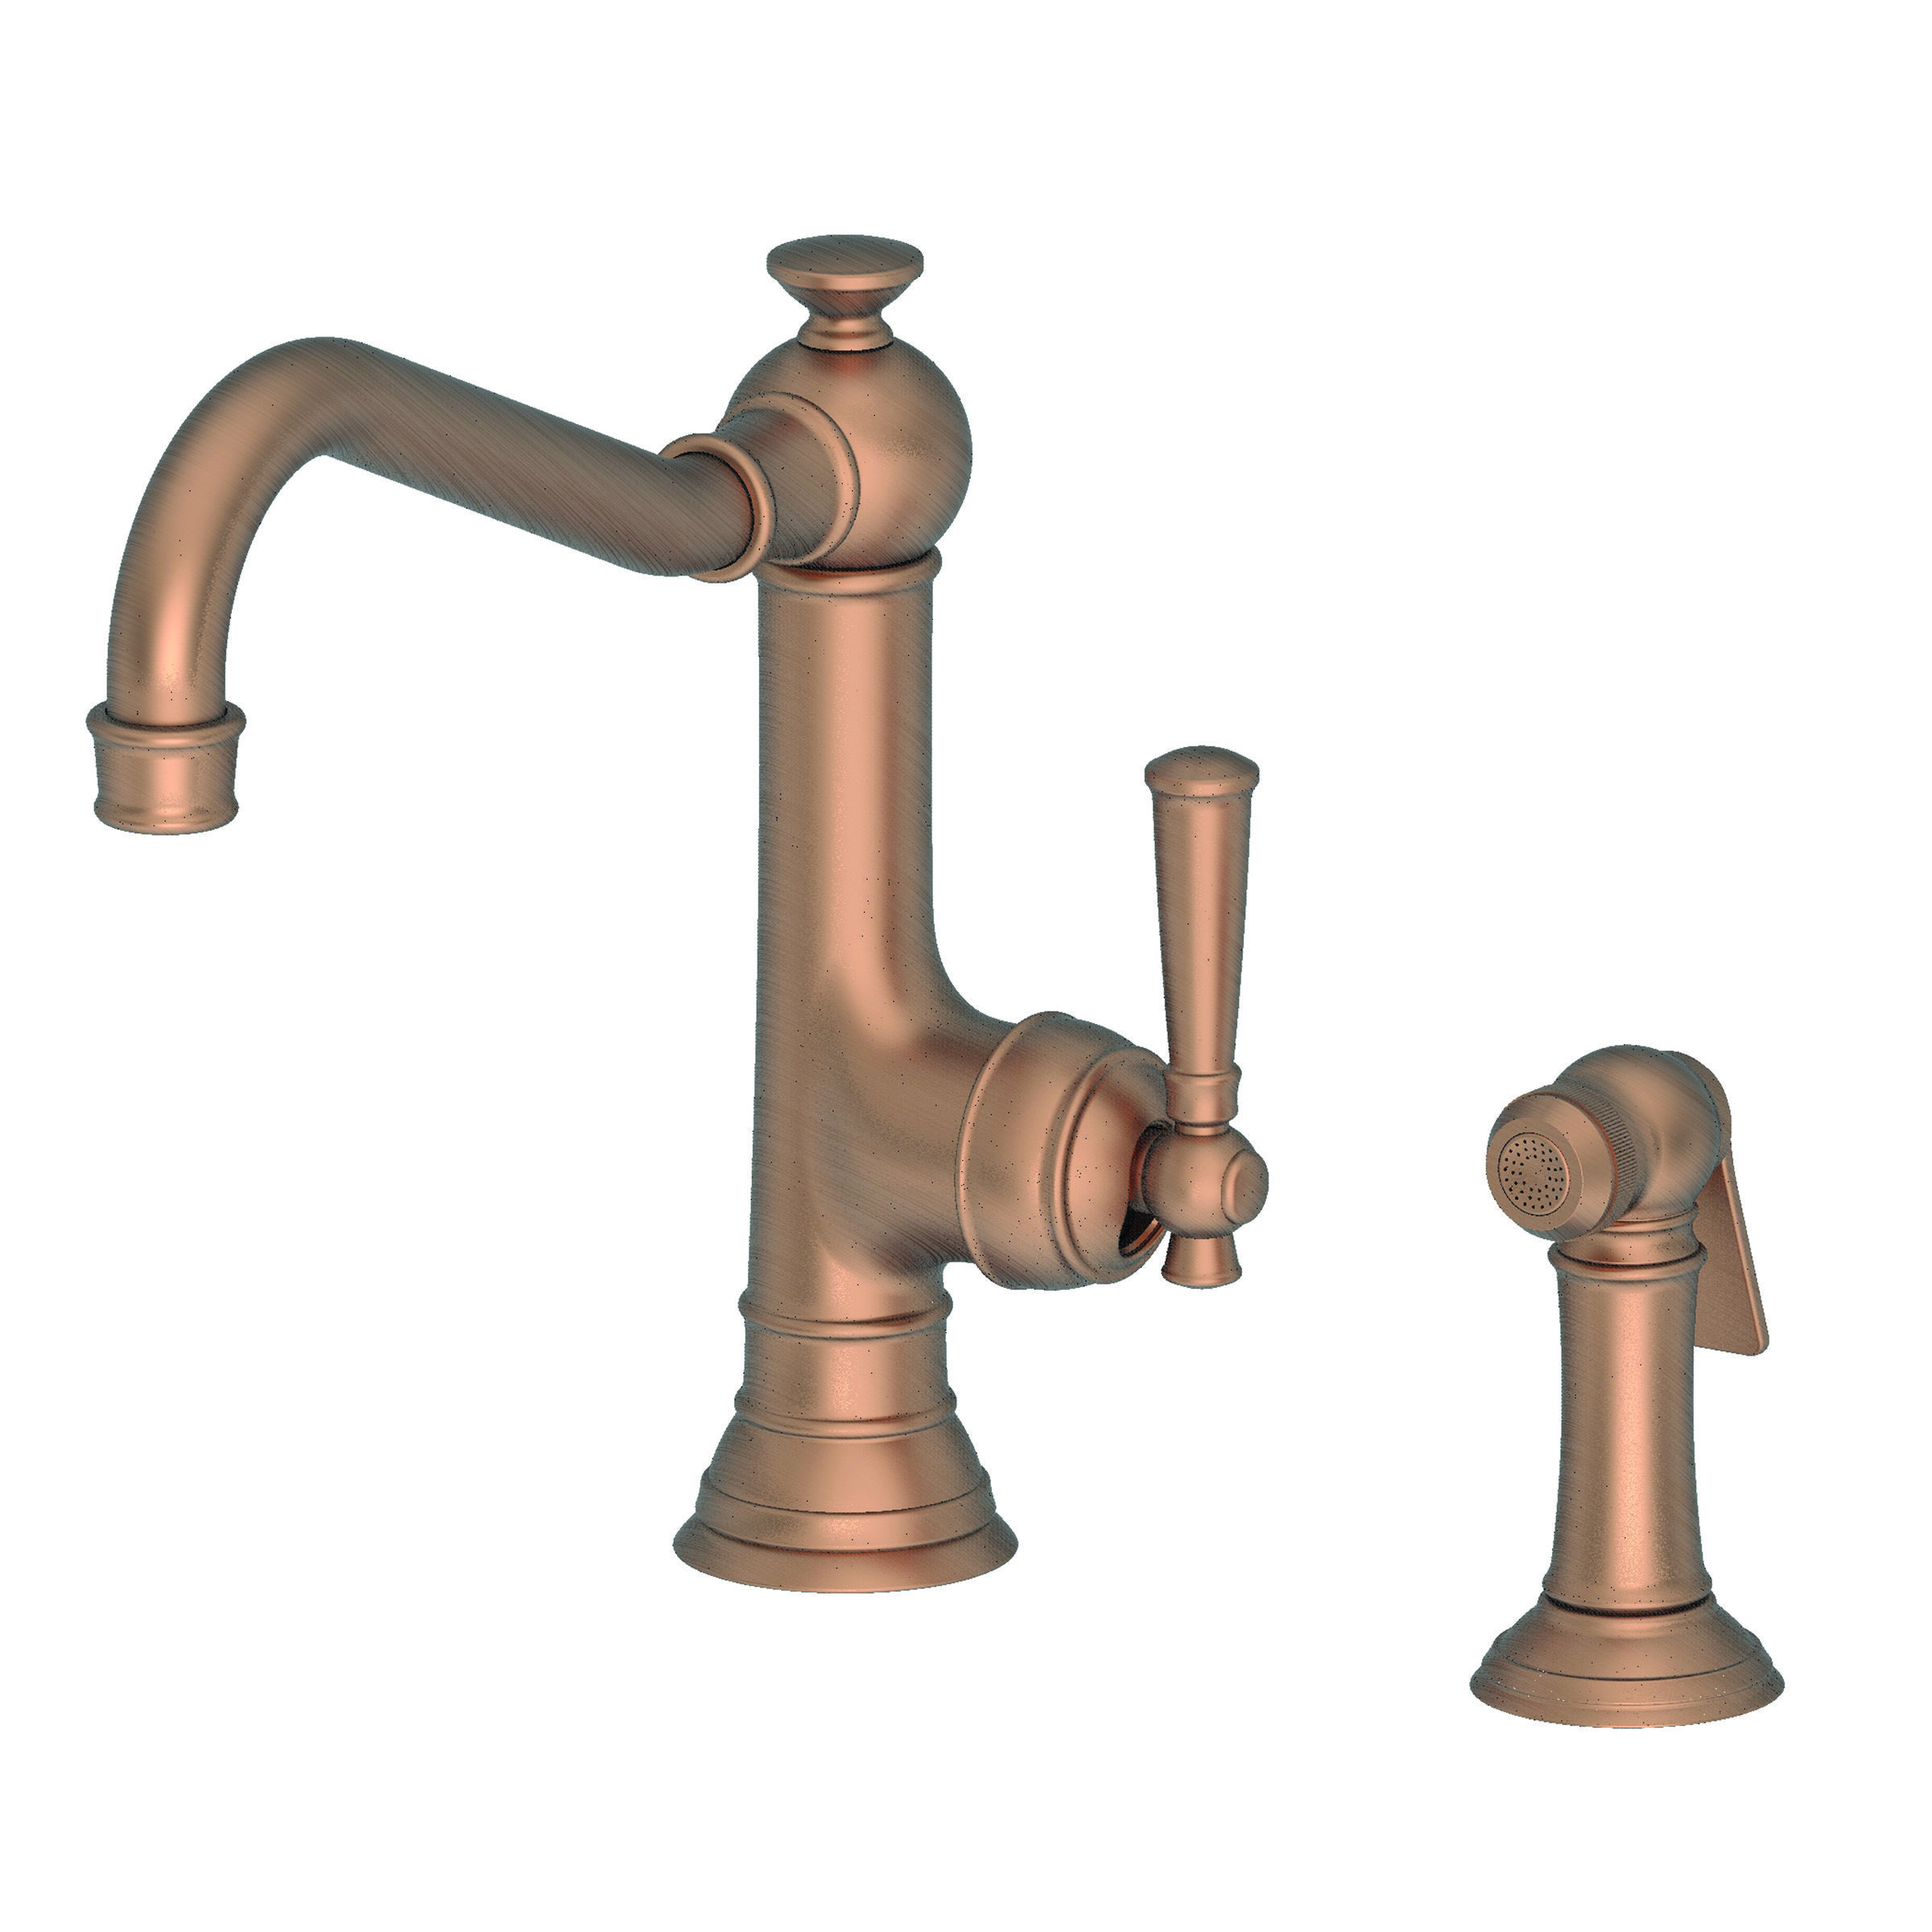 Newport Brass 2470 5313/06 Antique Brass Jacobean Single Handle Kitchen  Faucet With Side Spray   Faucet.com